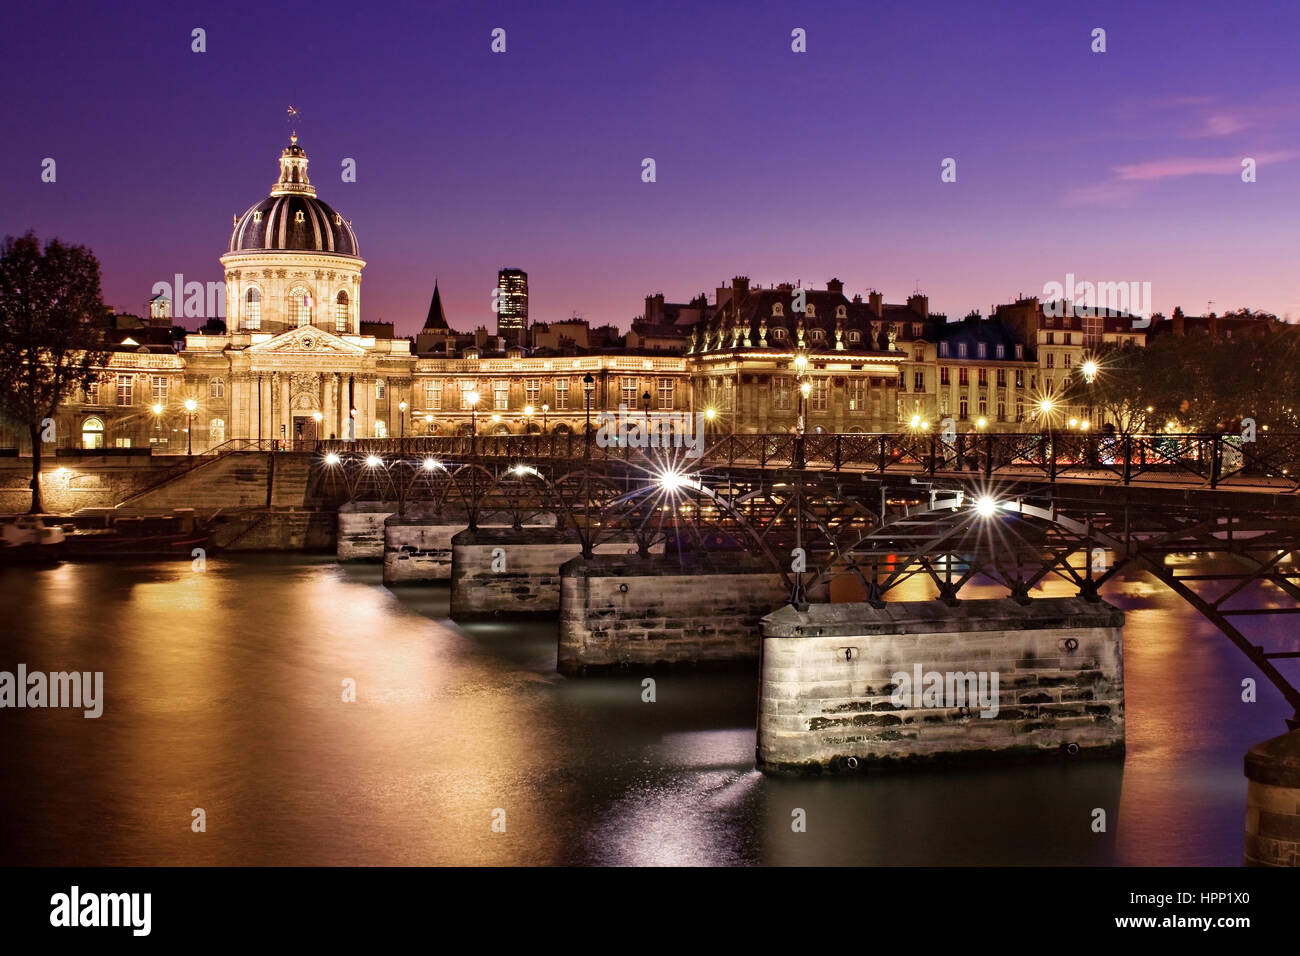 Night view of the Pont des Arts on the River Seine in Paris, France. The domes building of the Institut de France - Stock Image